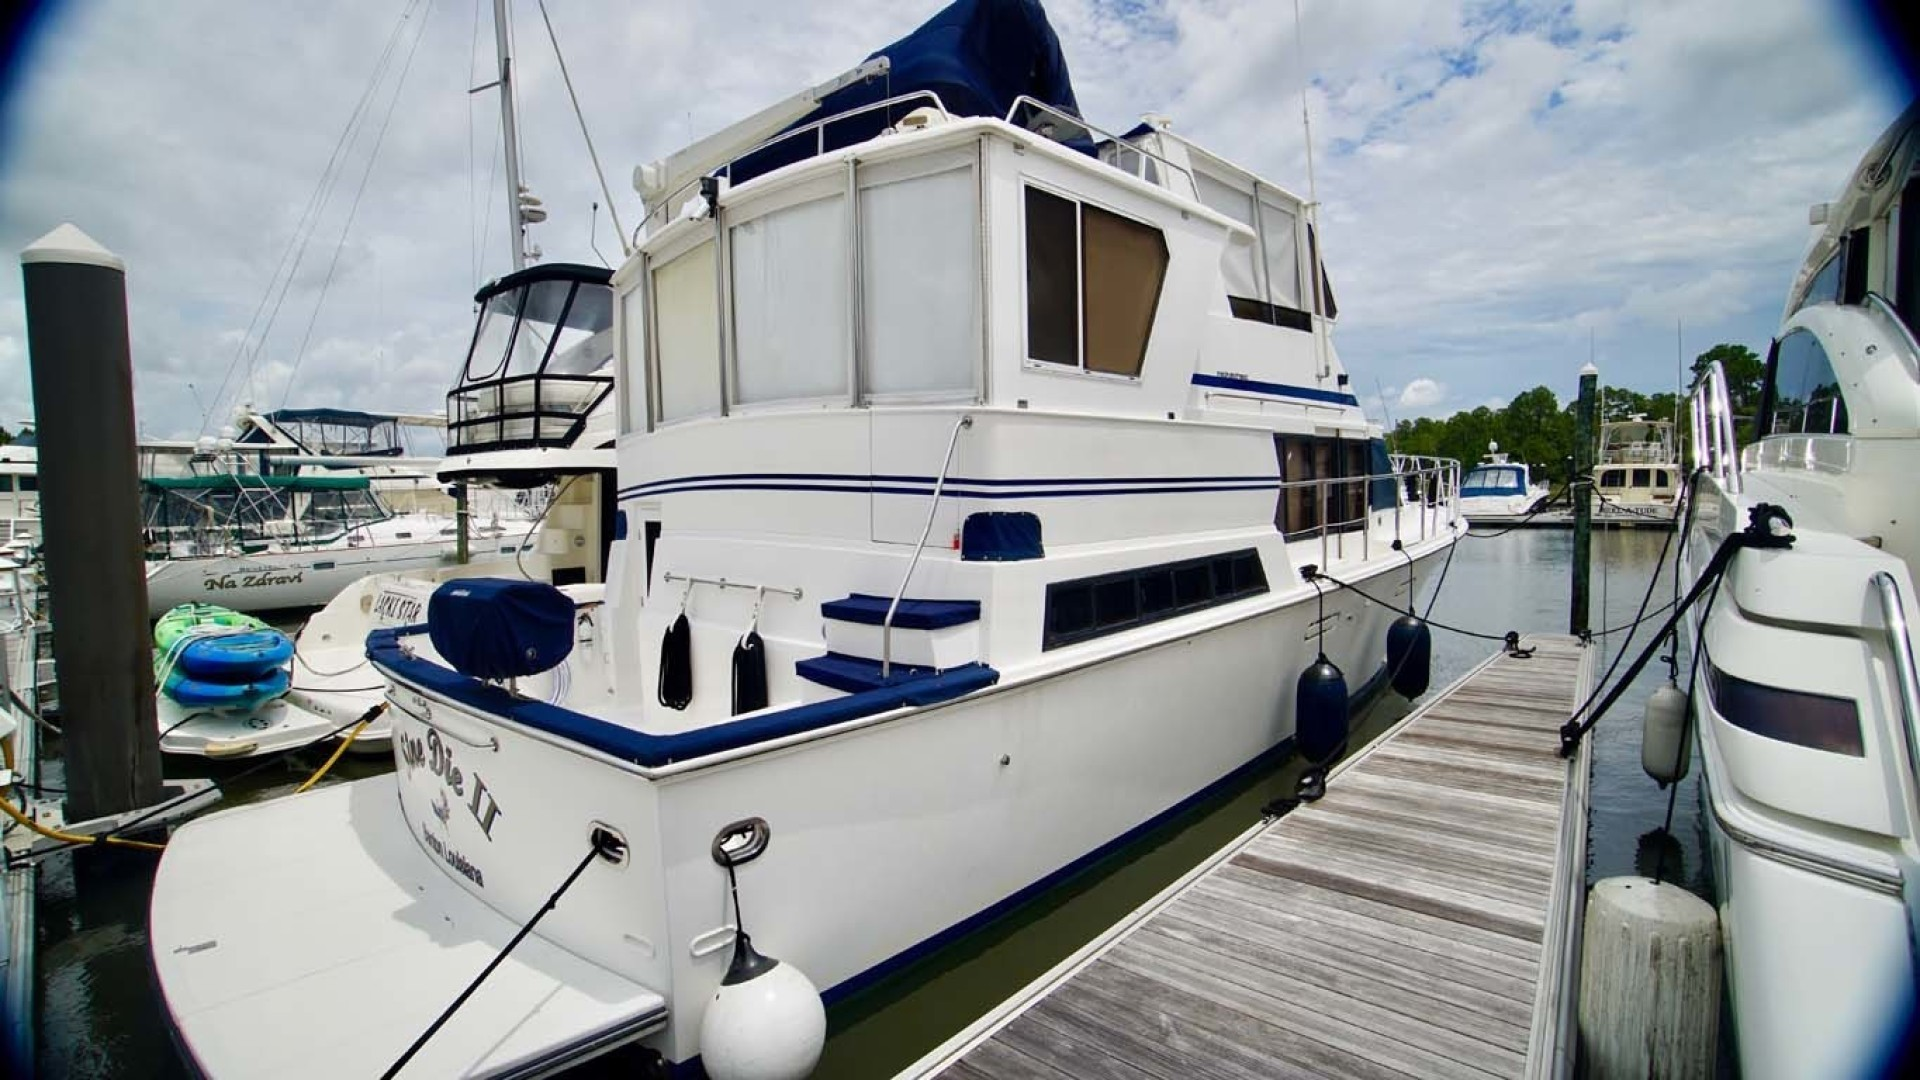 Novatec-48 Fast Trawler 2003-SINE DIE II Destin-Florida-United States-Starboard Aft View-1360653 | Thumbnail